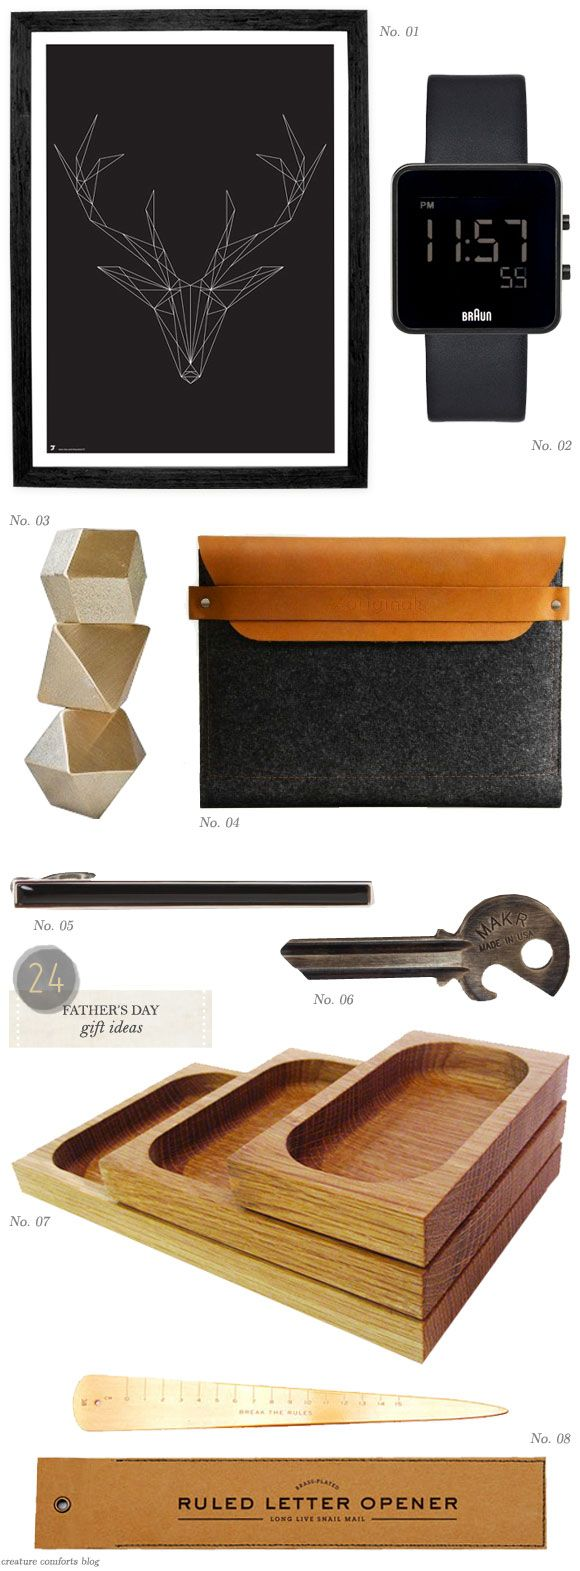 24 FATHER'S DAY GIFT GIVINGIDEAS | as blogged on Creature Comforts today